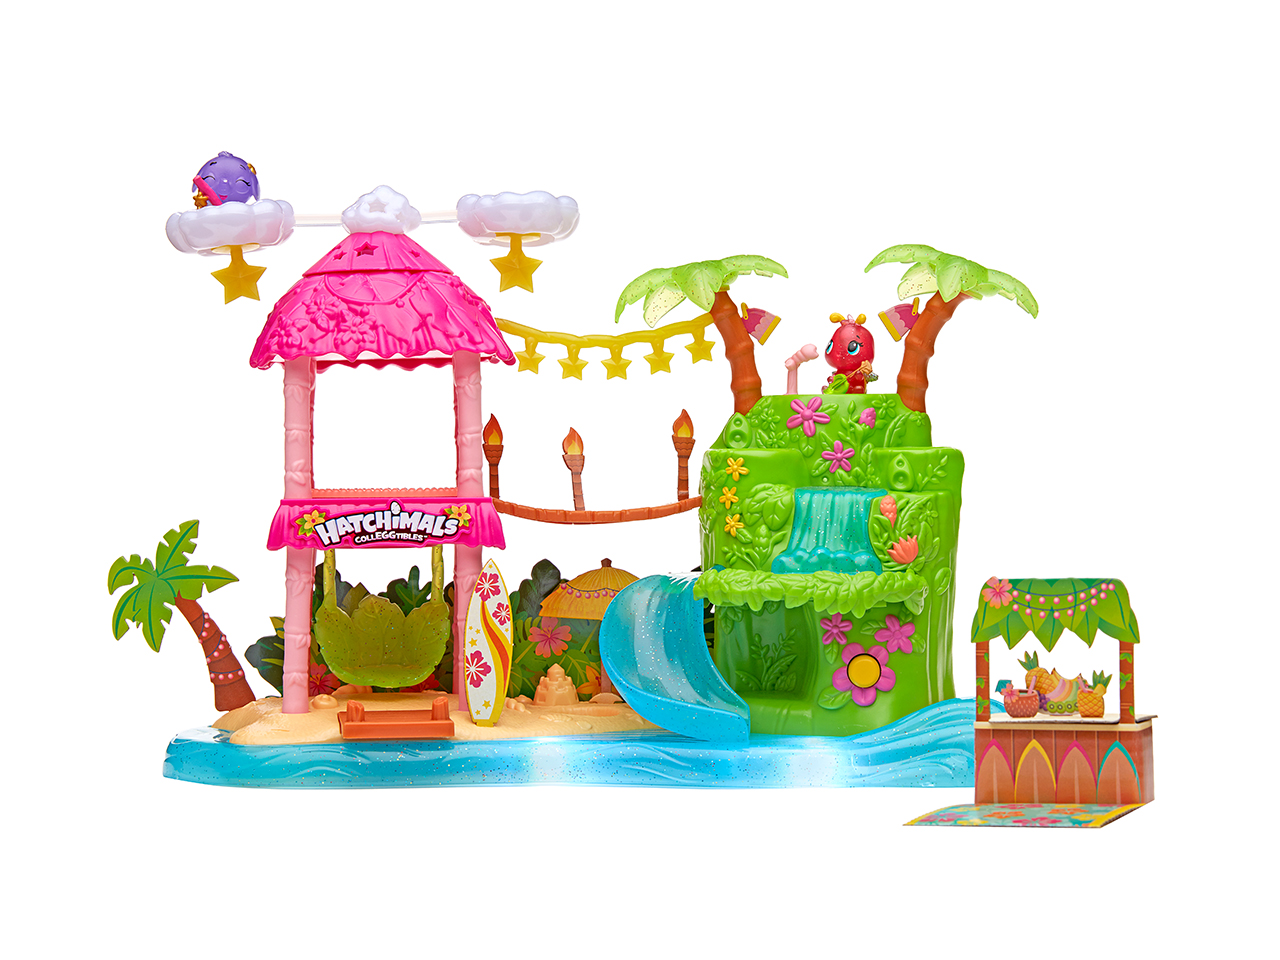 Hatchimals Colleggtibles Tropical Party Playset: A tropical island party play set